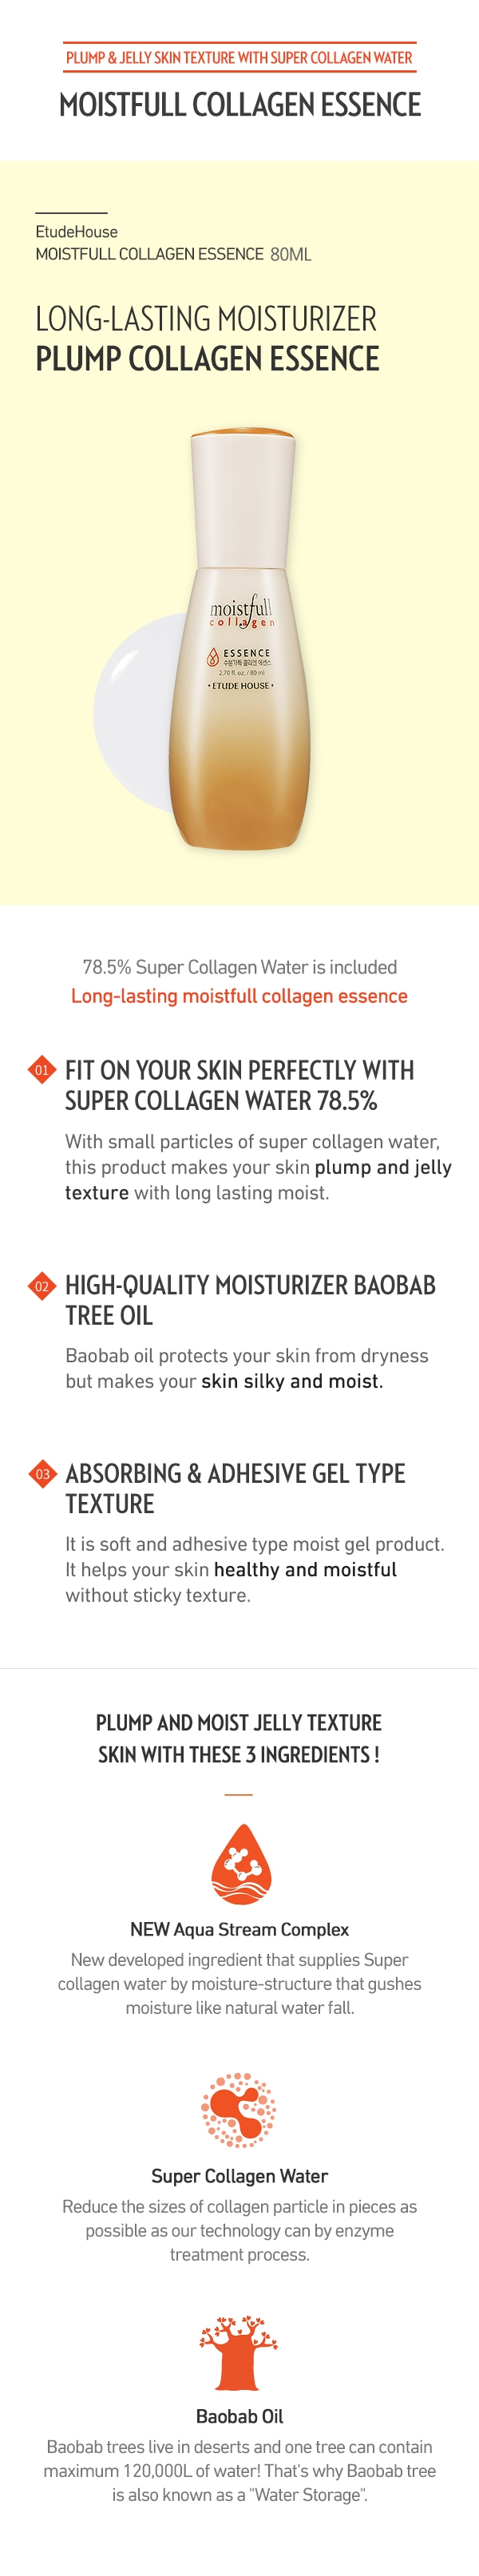 Moistfull collagen essence 80ml How to use Description Ingredients